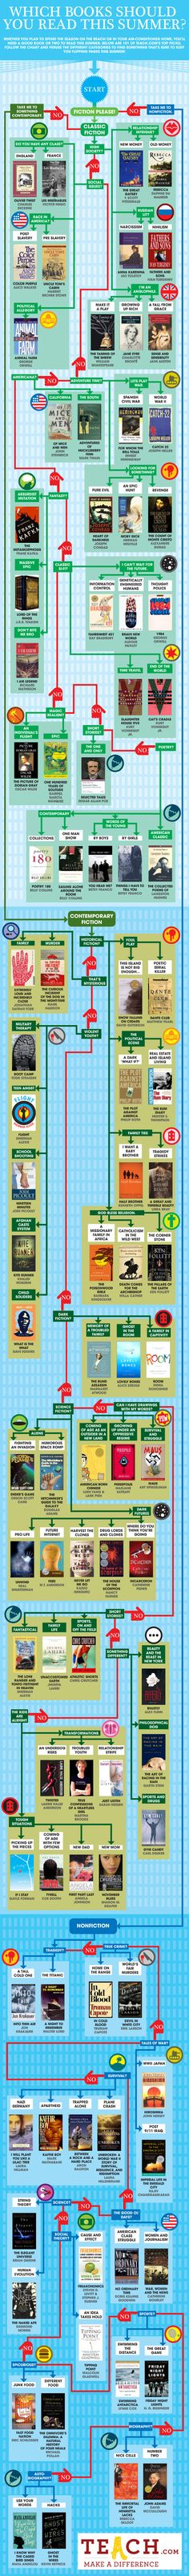 Summer Reading flowchart: 101 Books To Read This Summer Instead of '50 Shades of Grey'